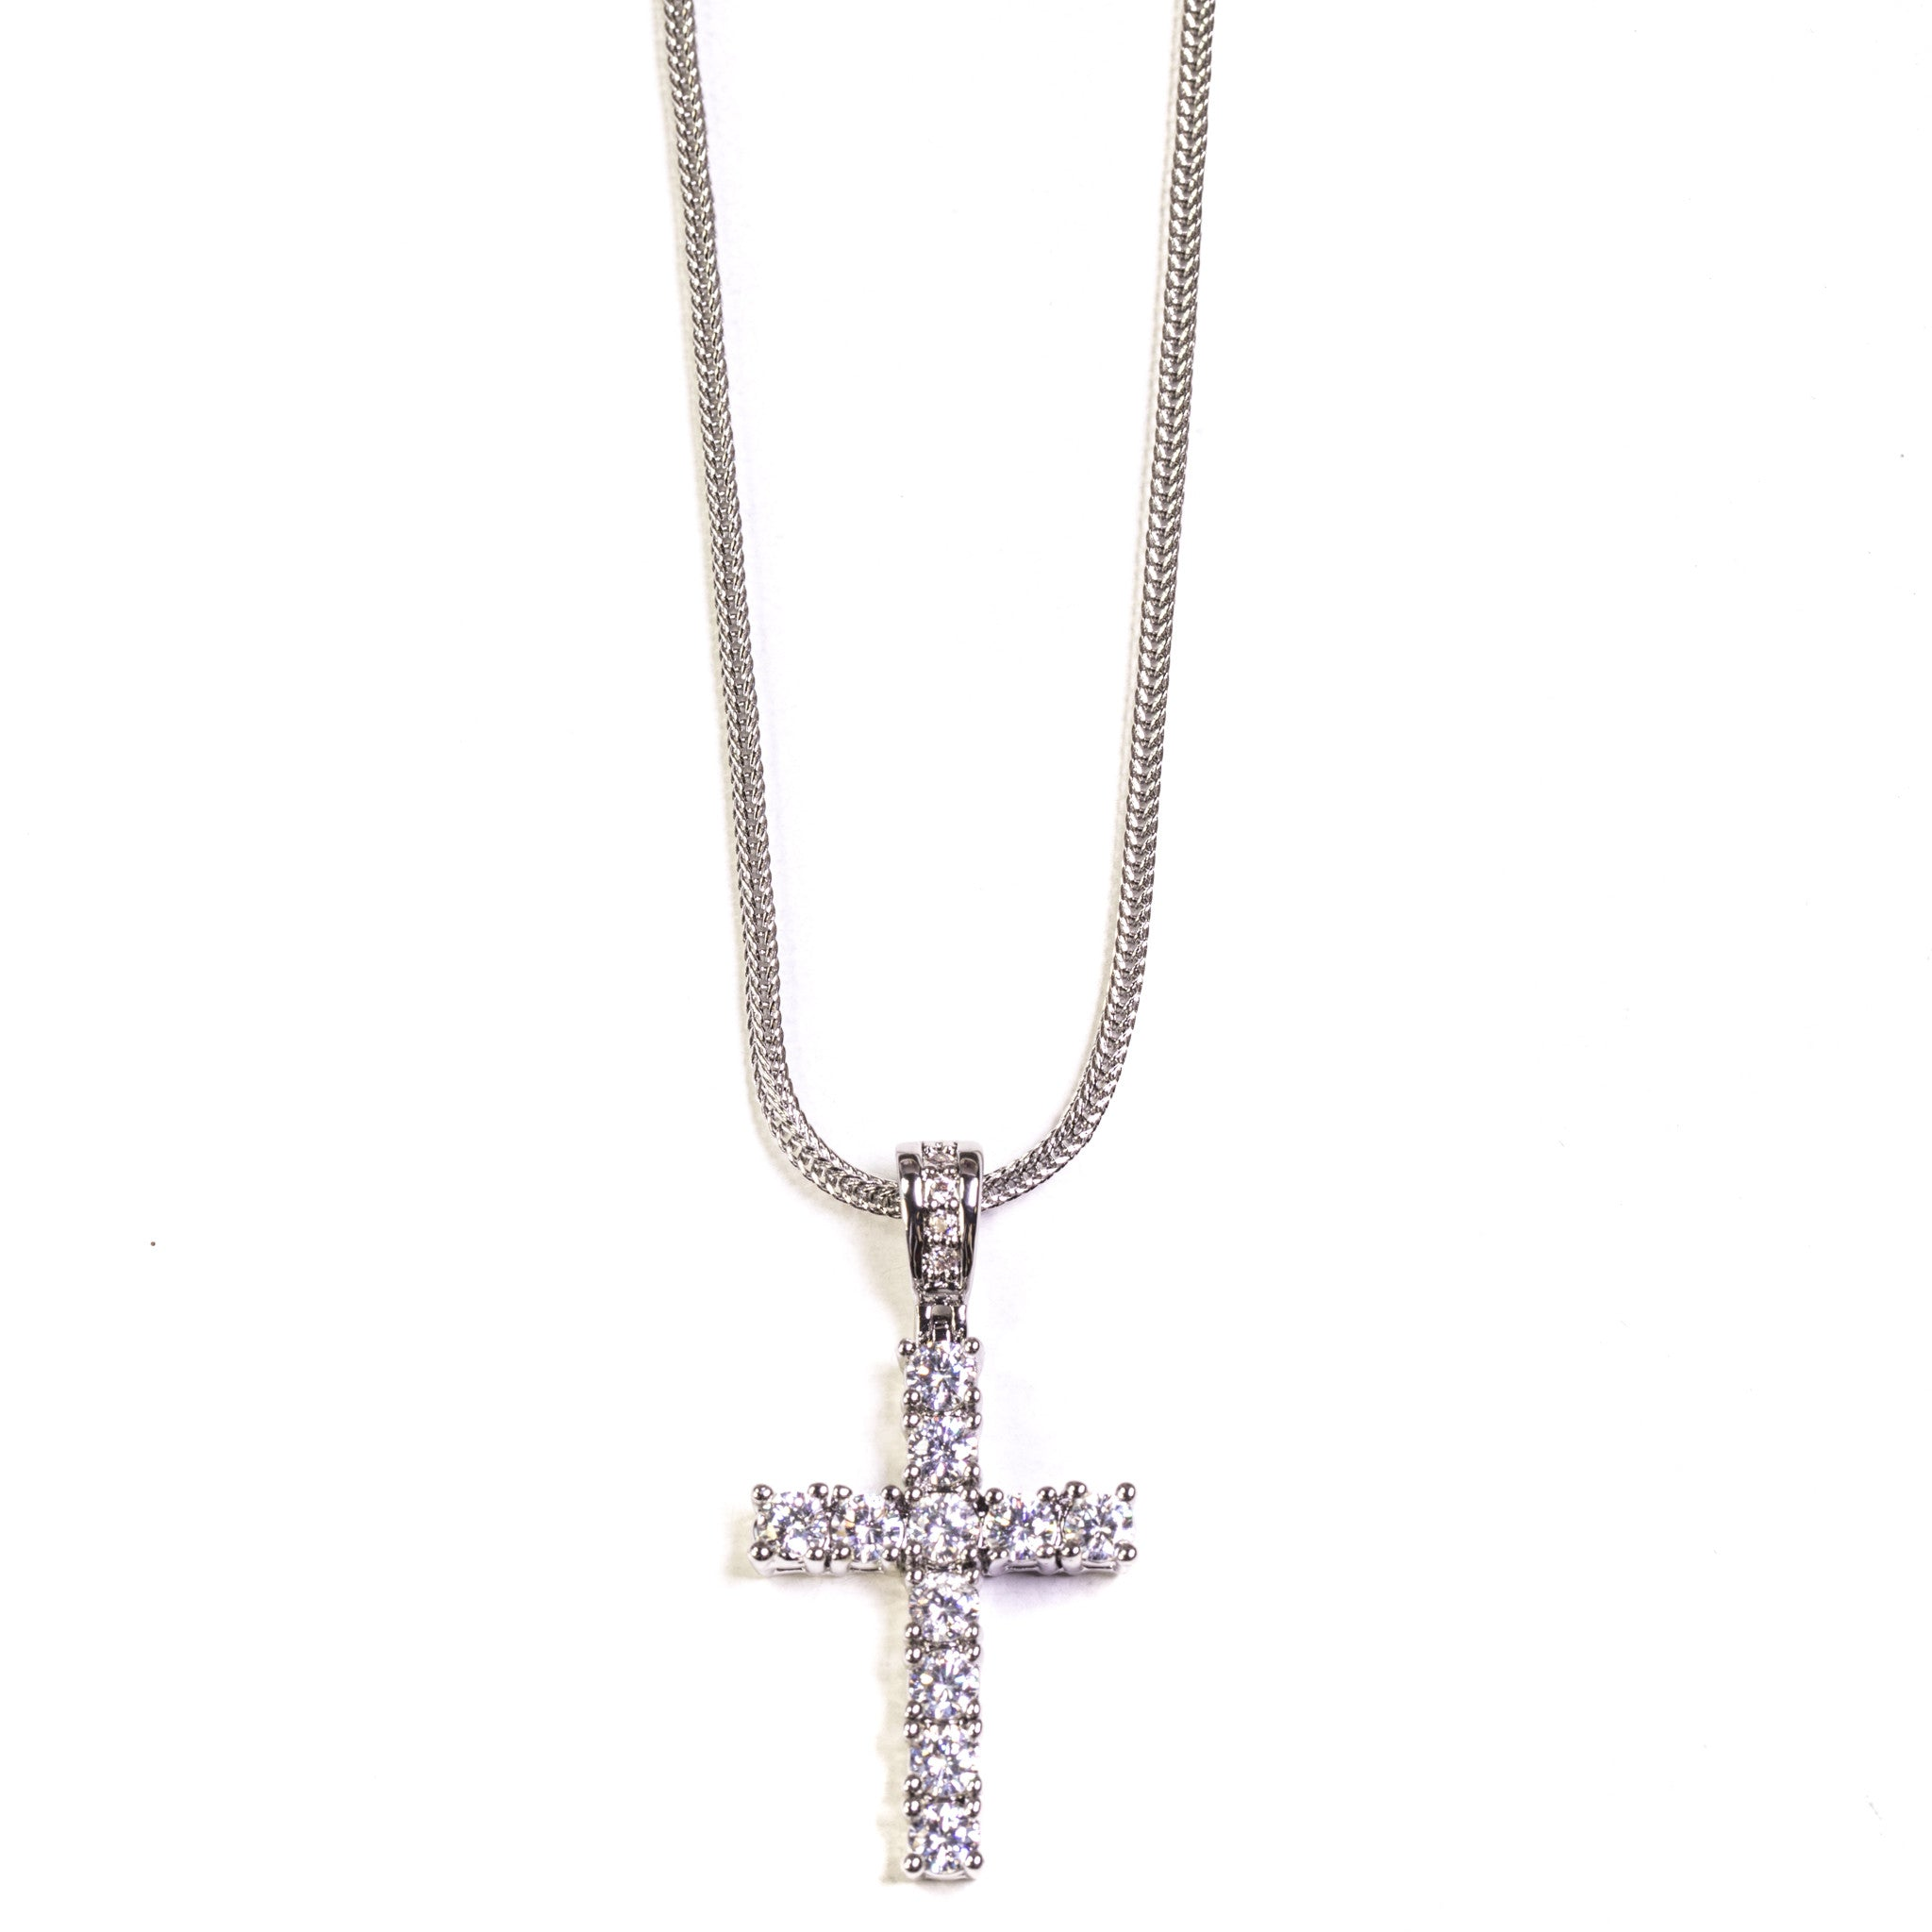 Cross - Silver Polished - ACCESSORIES, Golden Gilt, SNEAKER STUDIO, GOLDEN GILT, DESIGN BY TSS